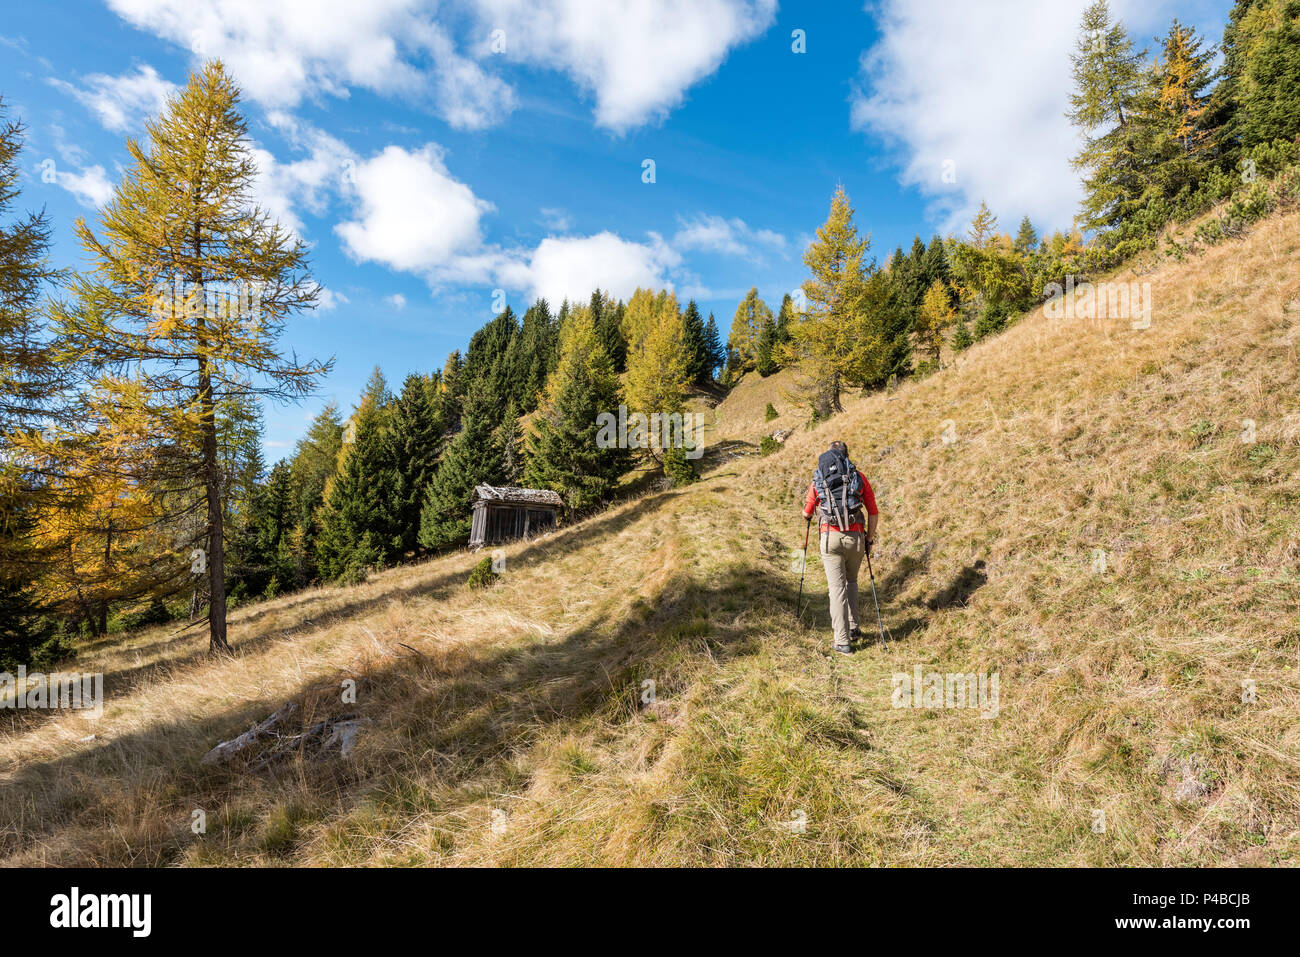 Mount Sasso Bianco, Dolomites, Alleghe, province of Belluno, Veneto, Italy, Europe. A hiker in the ascend to the summit of mount Sasso Bianco - Stock Image